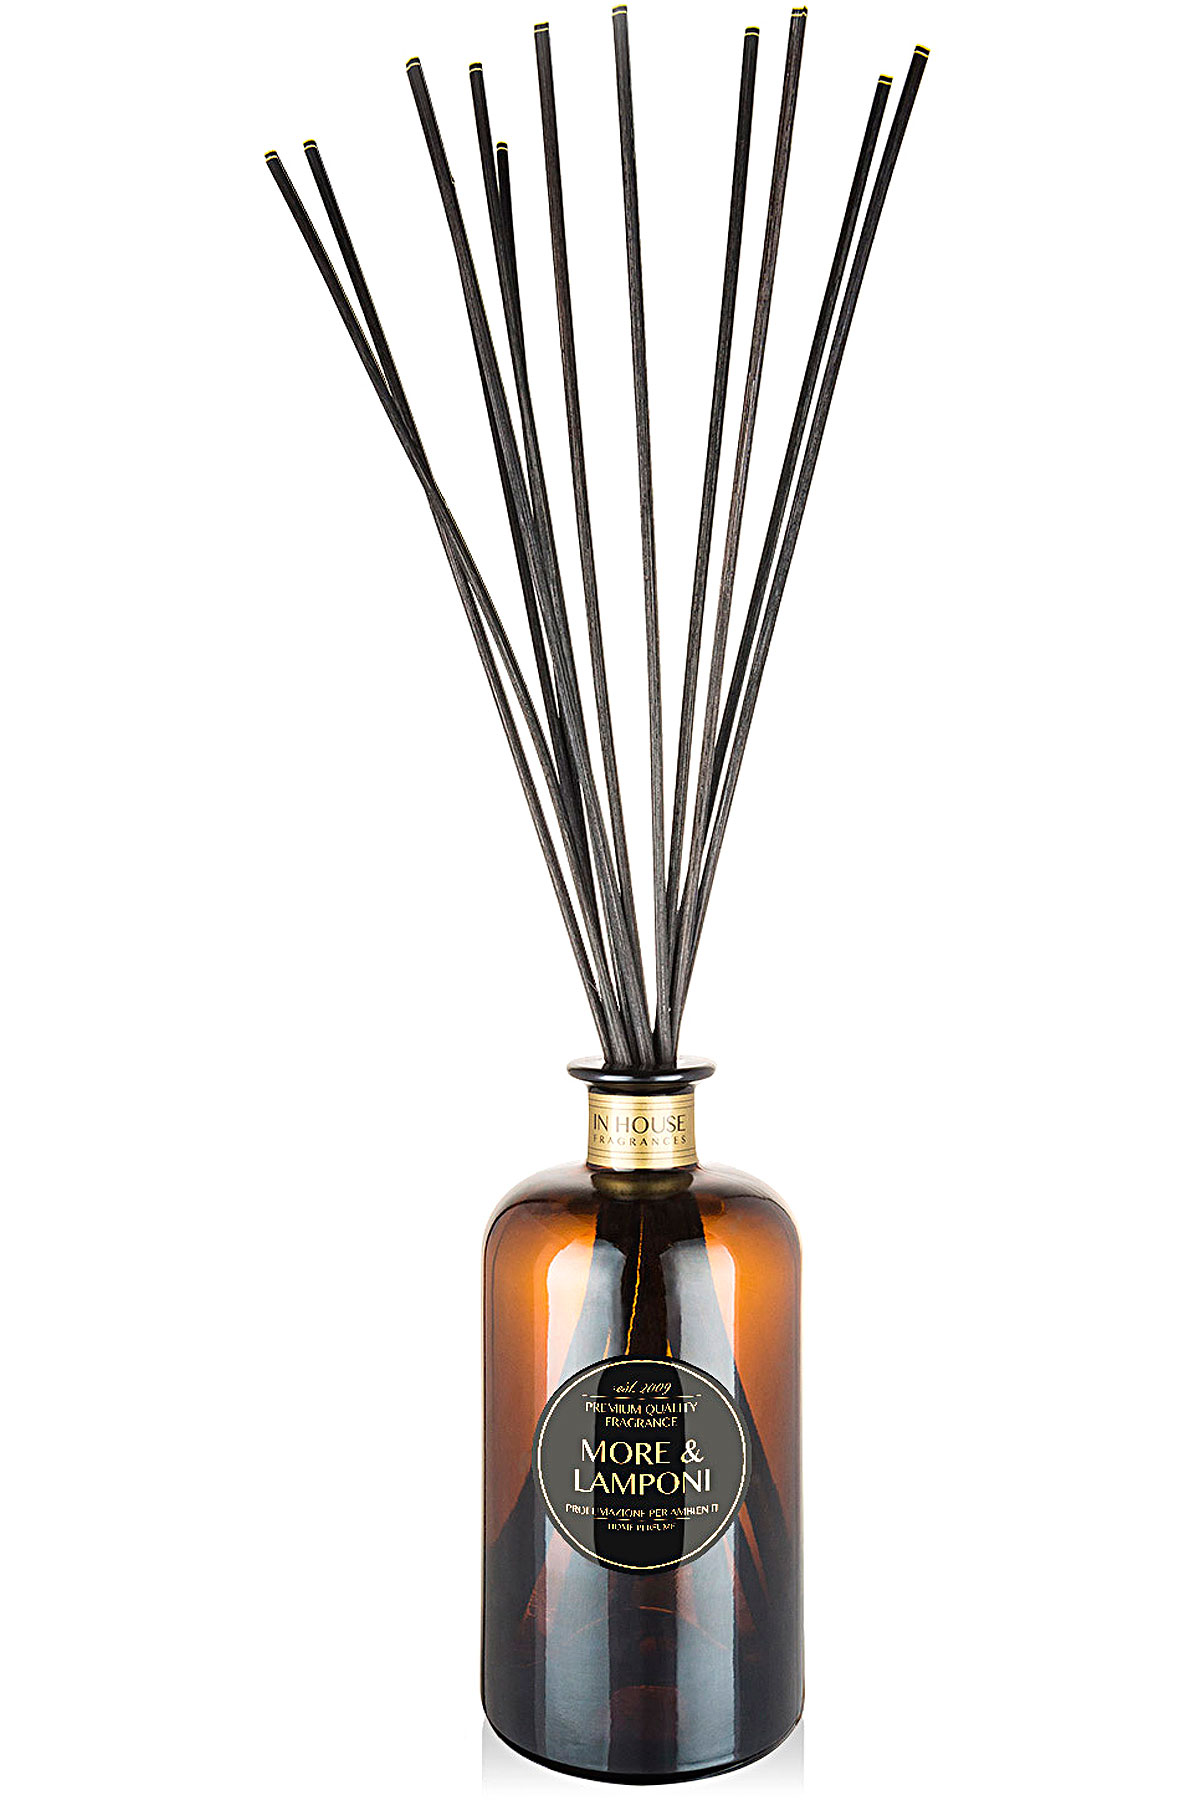 In House Fragrances Home Scents for Men, More & Lamponi - Home Diffuser - 500 Ml, 2019, 500 ml